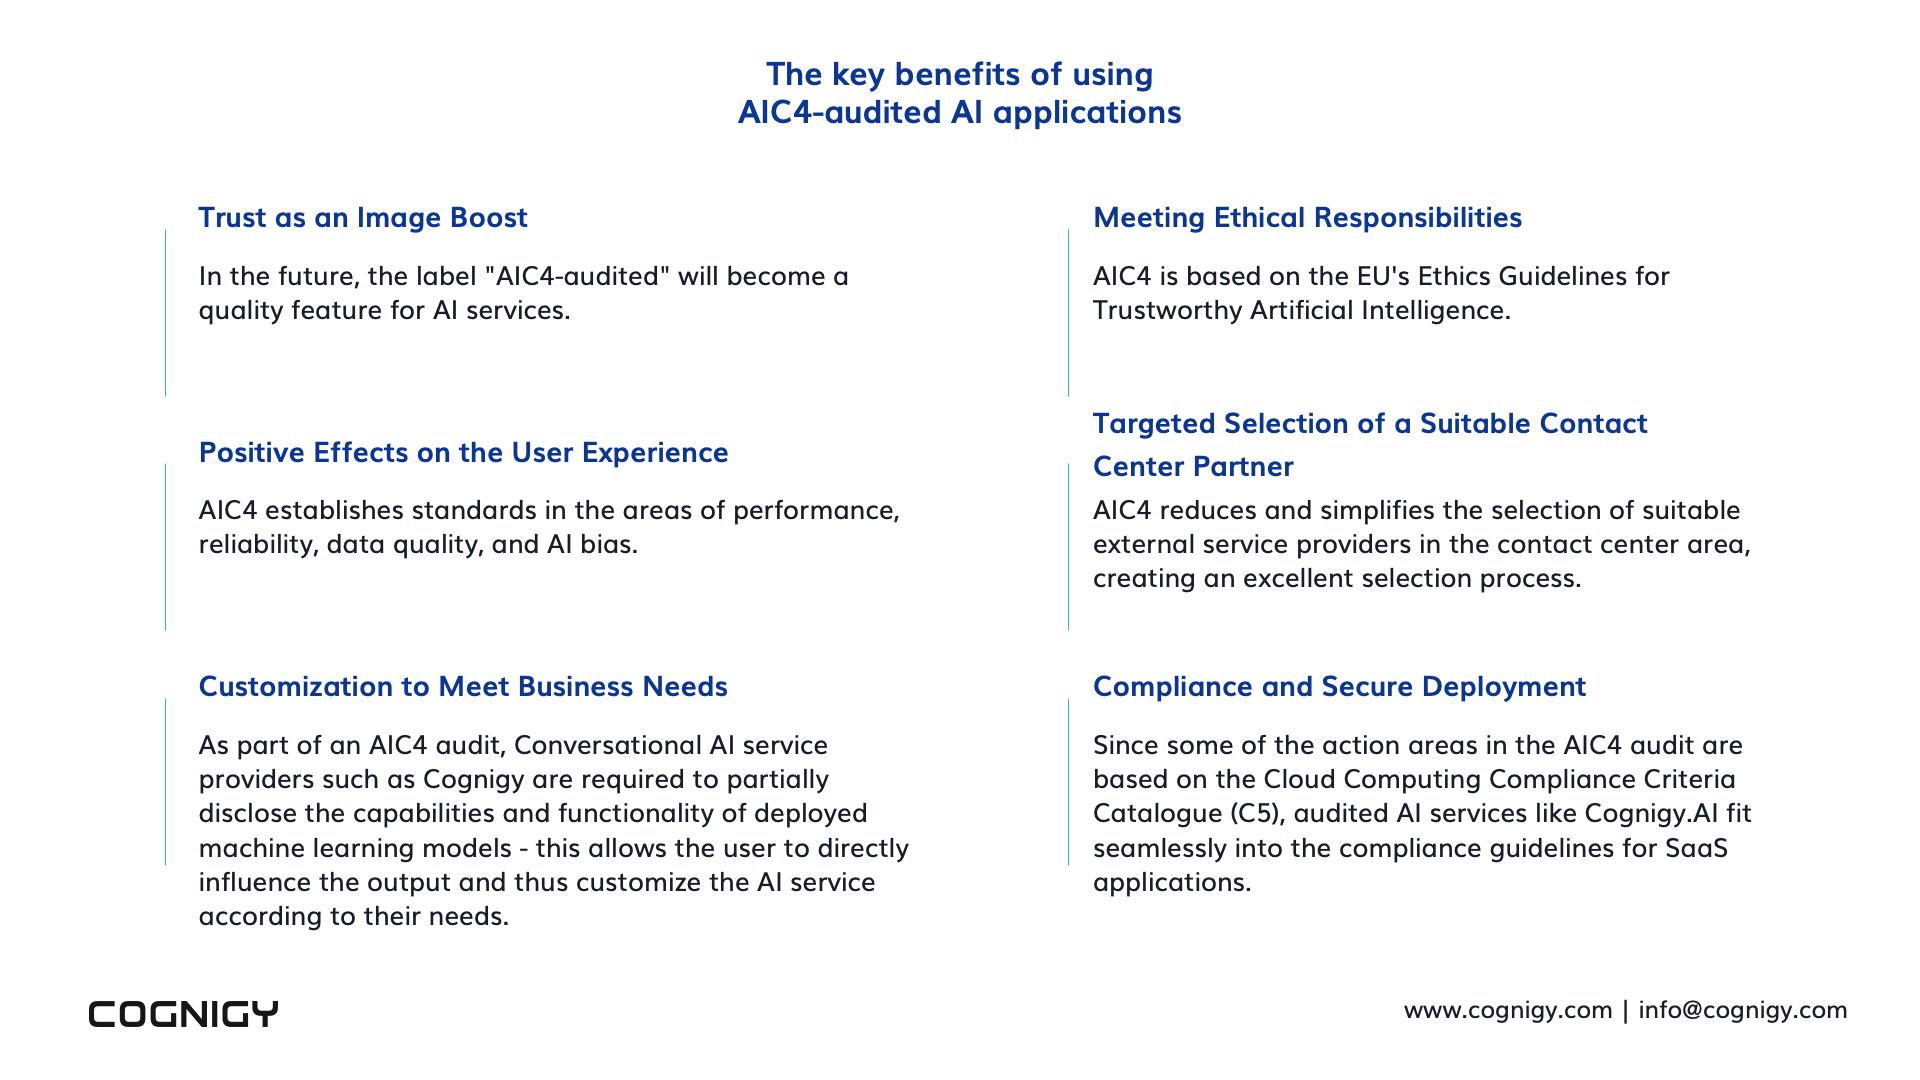 The key benefits of using AIC4-audited AI applications